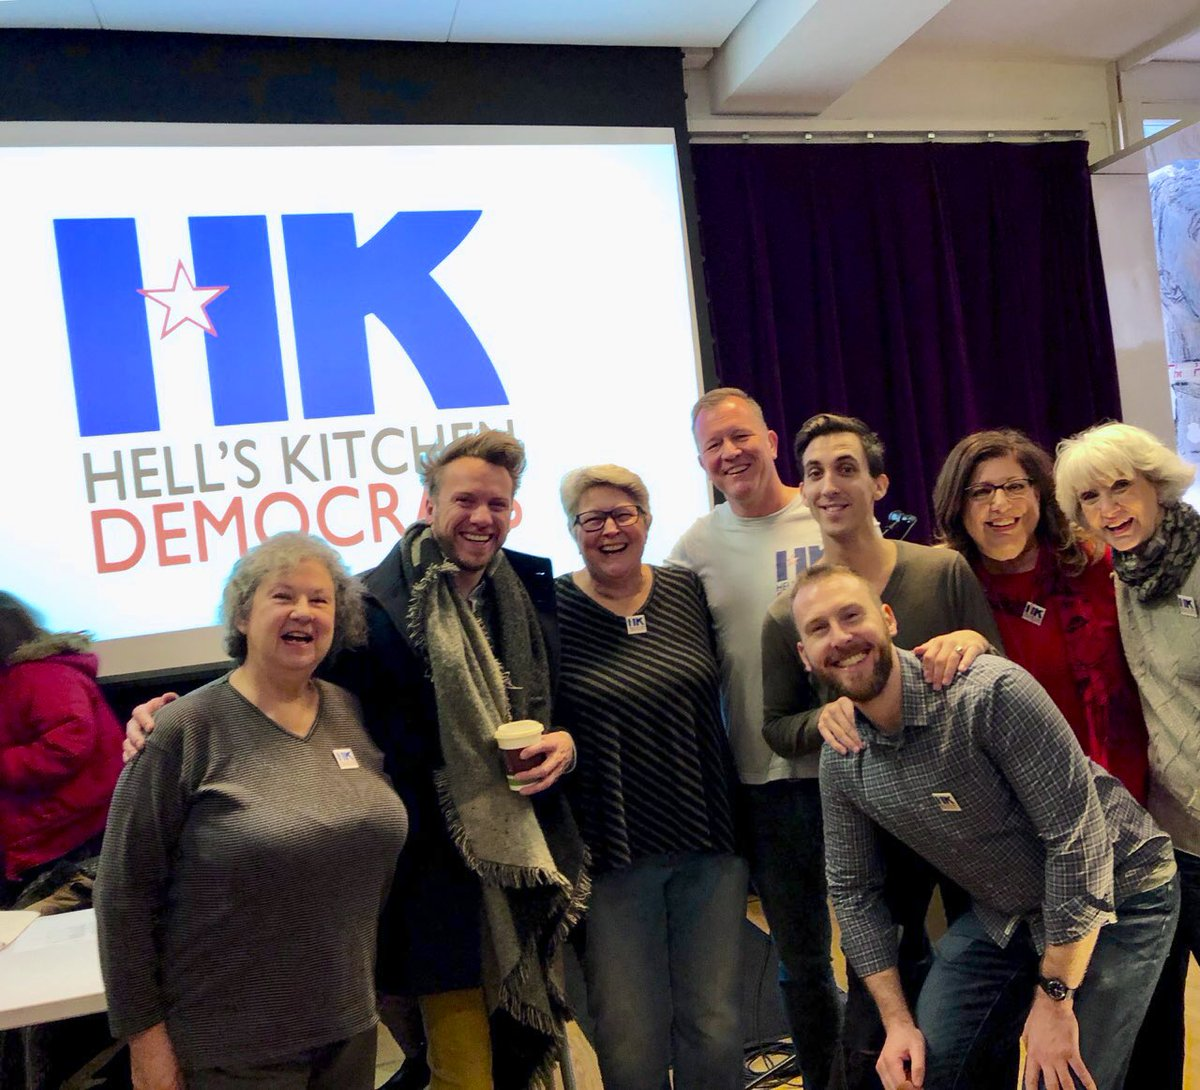 Excited to represent Hell's Kitchen at the #publicadvocate forum! #hkdems #nycpolitics